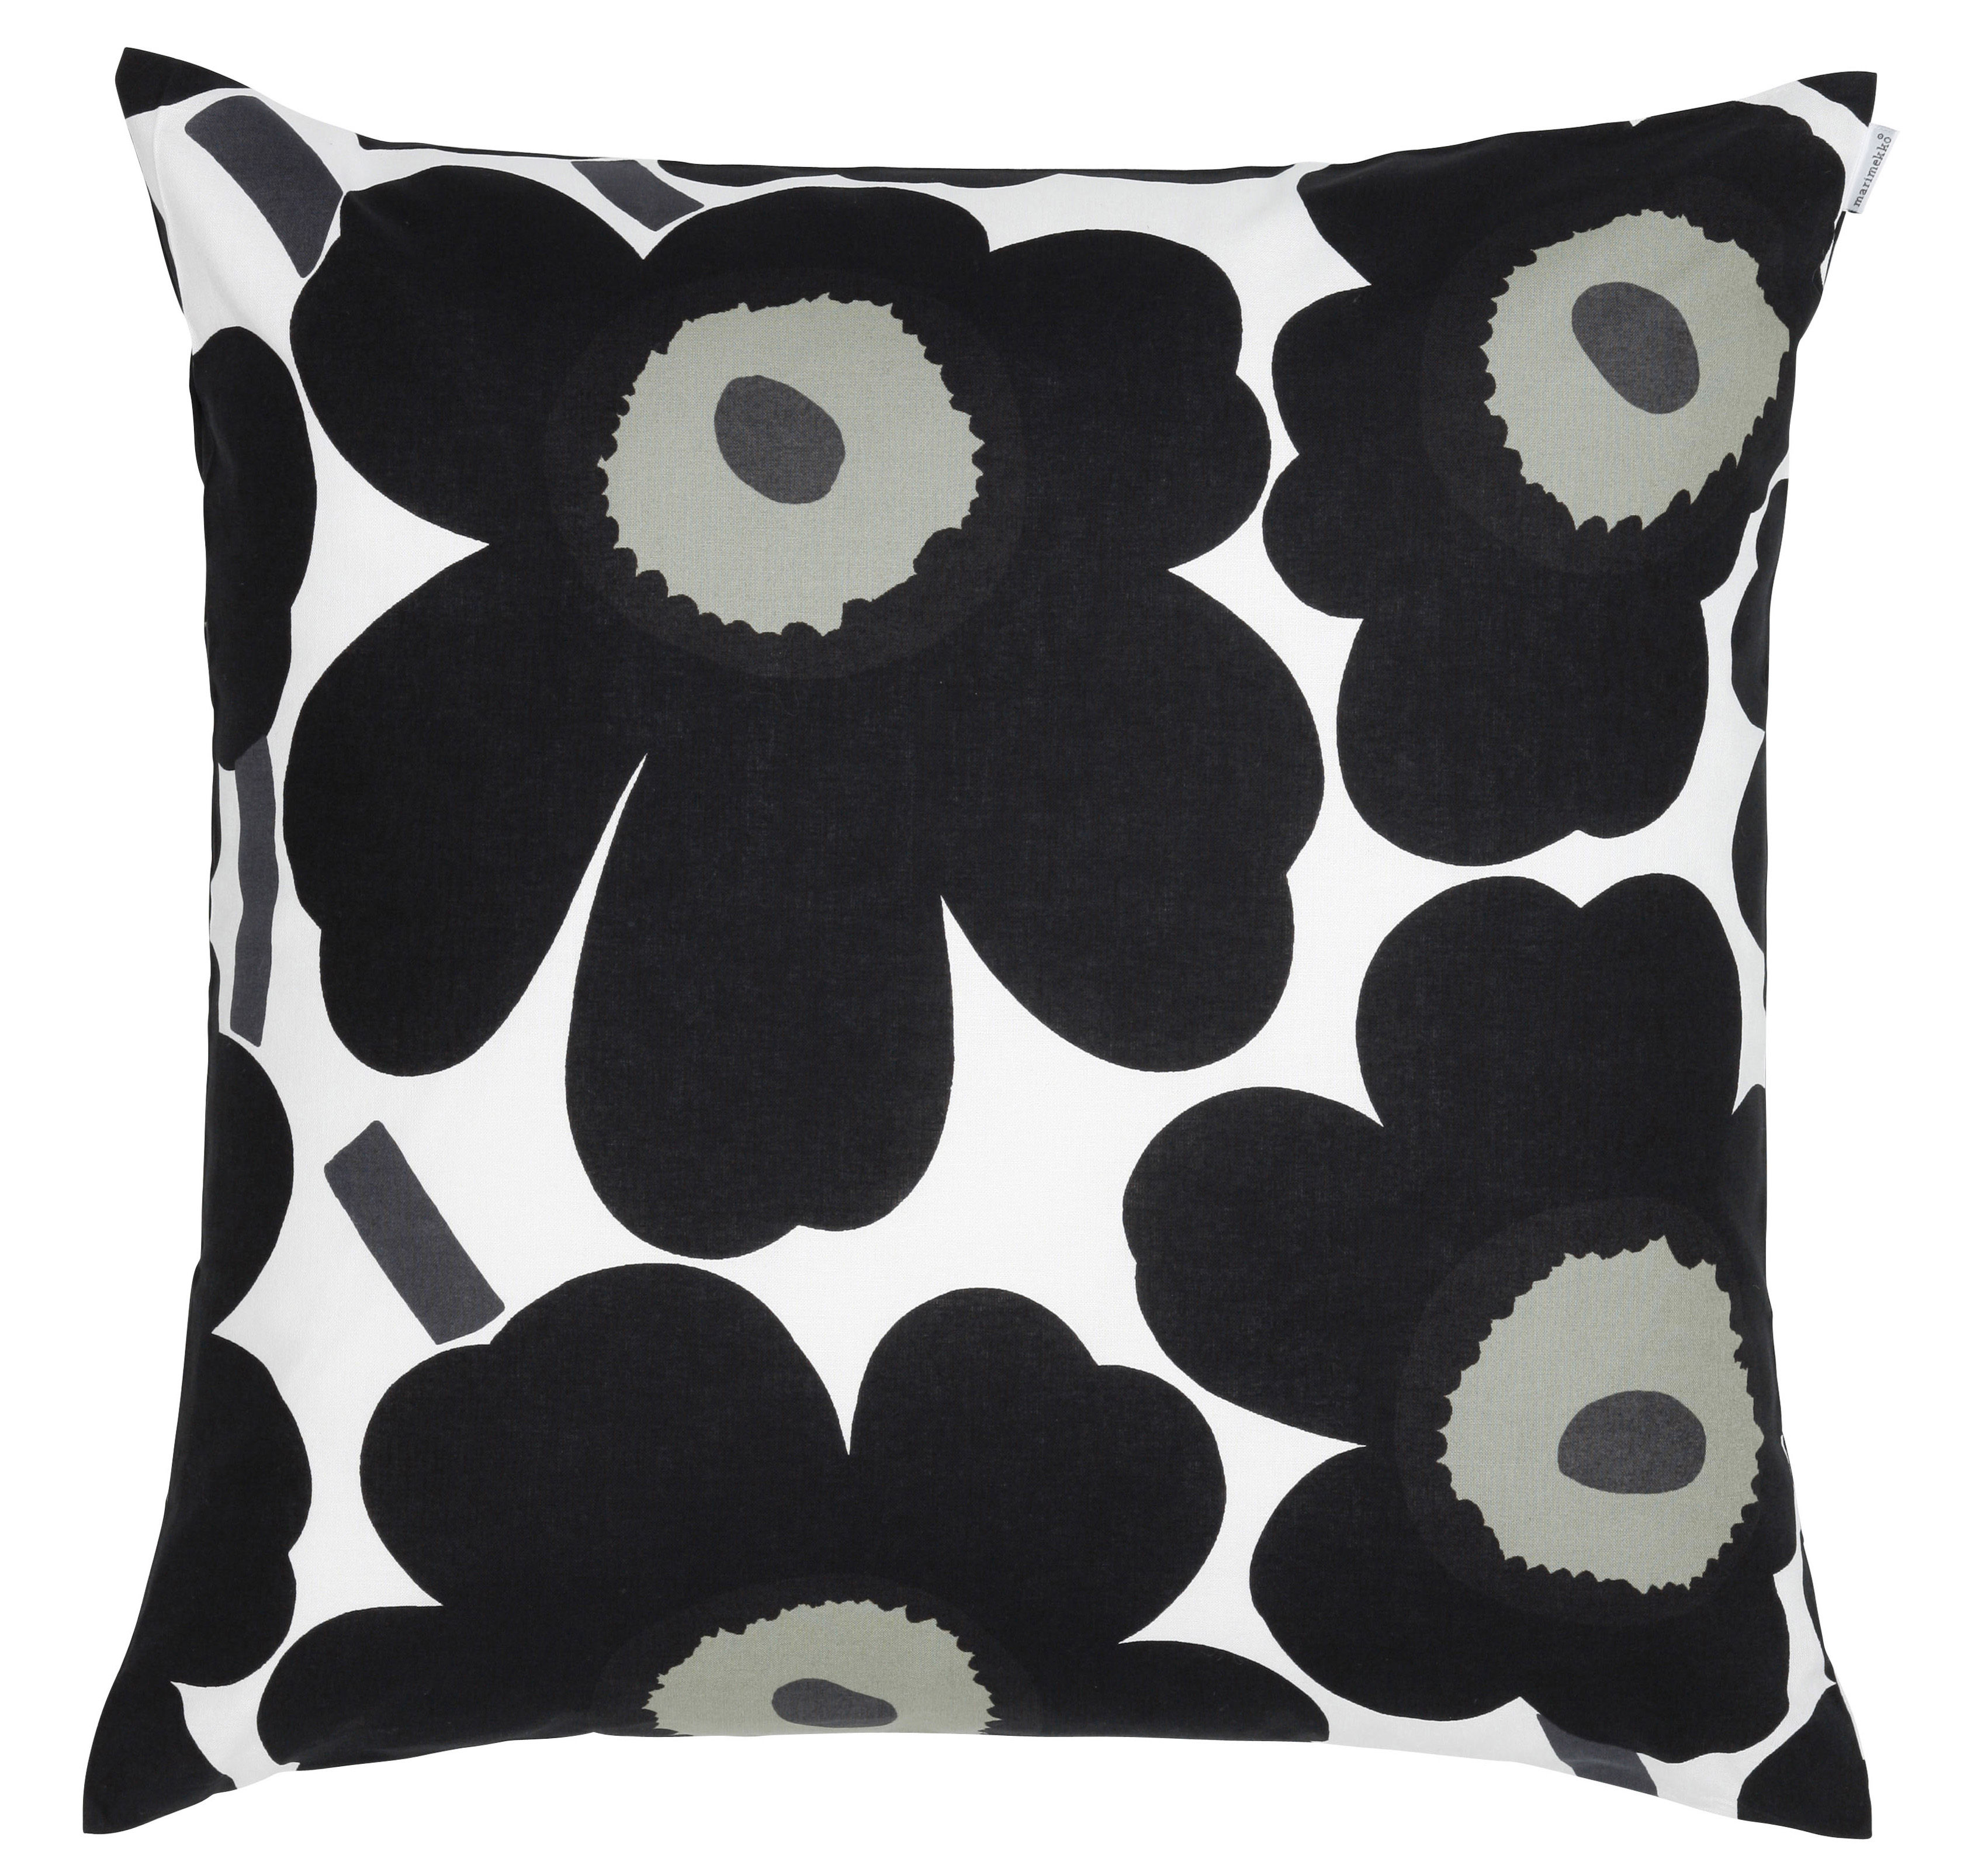 Decoration - Cushions & Poufs - Pieni Unikko Cushion - 50 x 50 cm by Marimekko - Pieni Unikko - White & black - Cotton